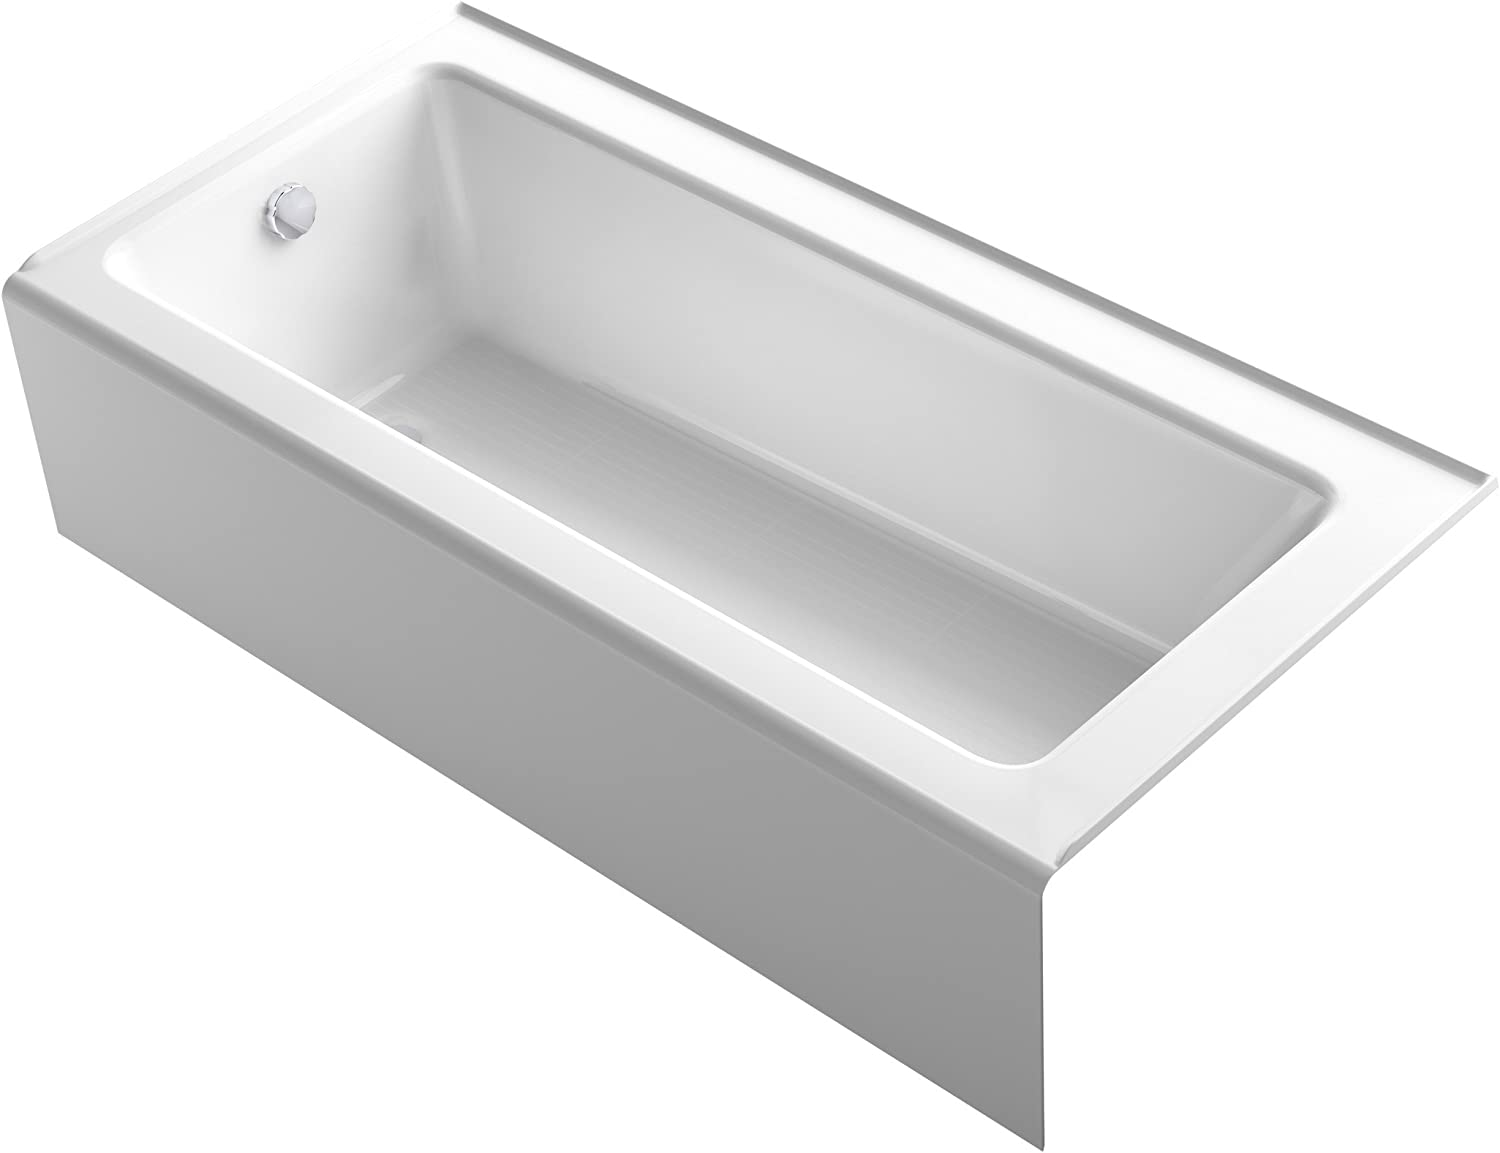 """KOHLER 847-0 Bellwether 66"""" x 32"""" Alcove Bath with Integral Apron, Tile Flange and Left-Hand Drain, White"""